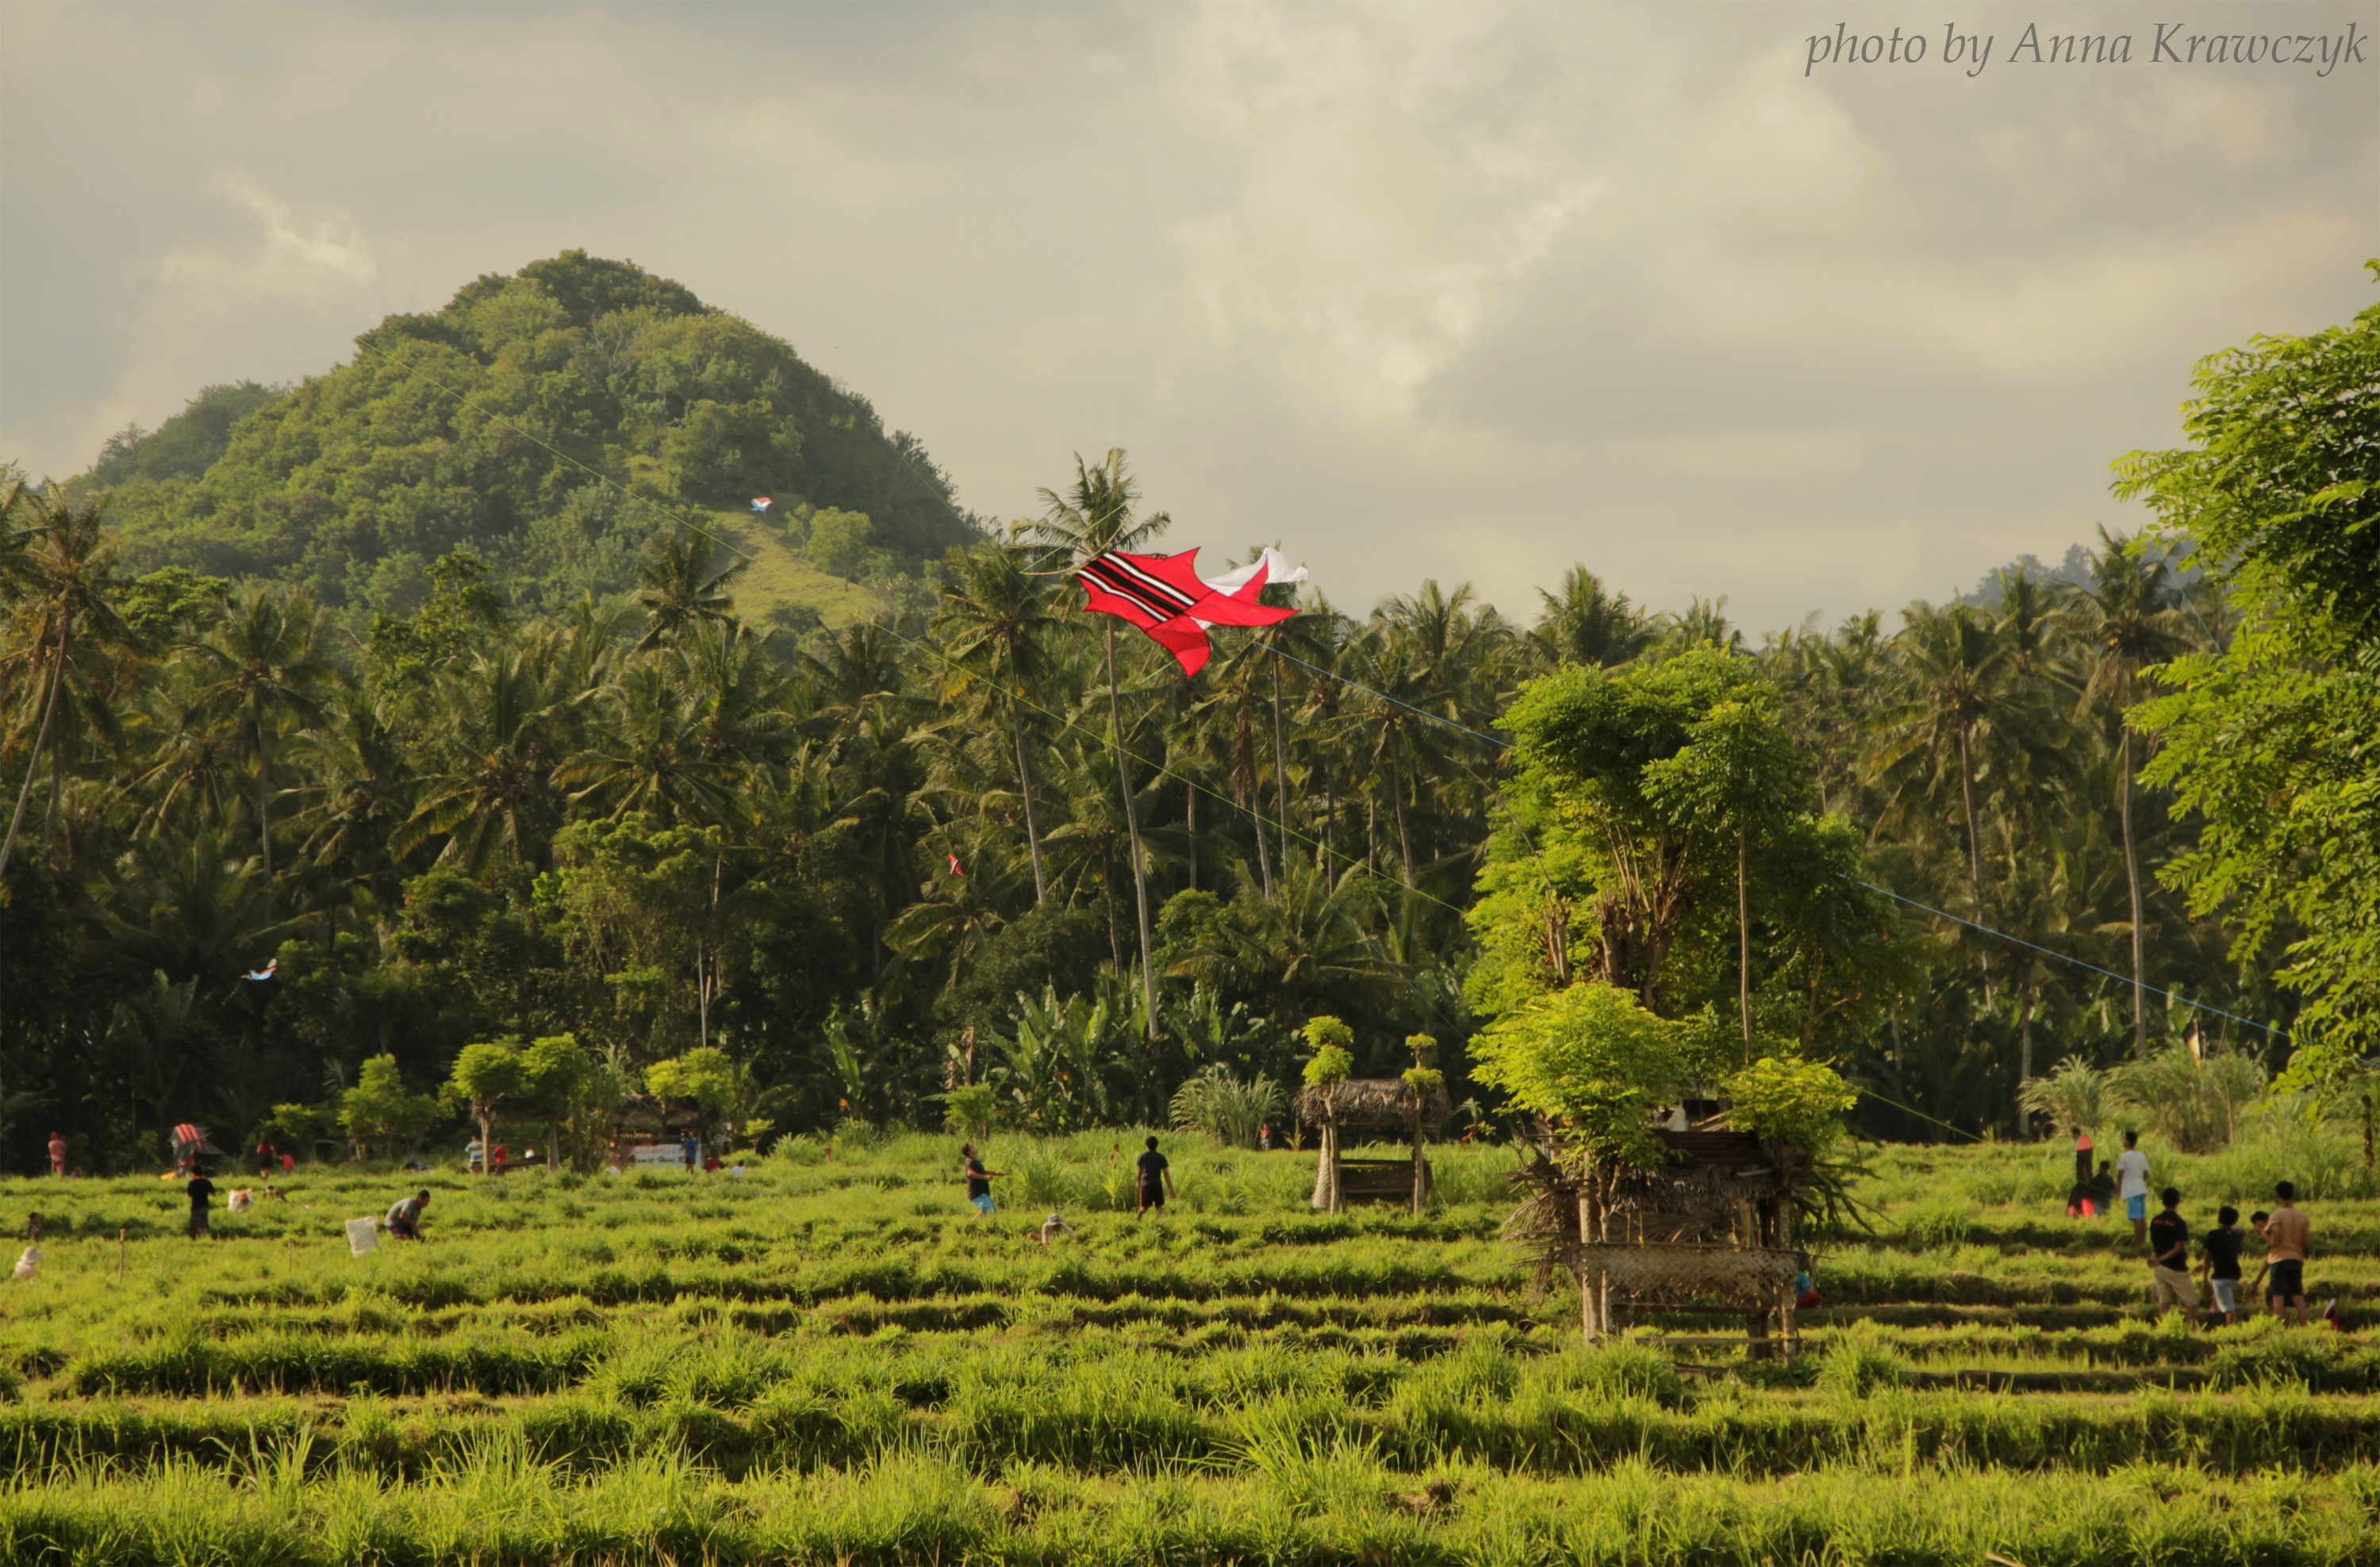 Kids playing with kites on rice fields of Candidasa, Bali